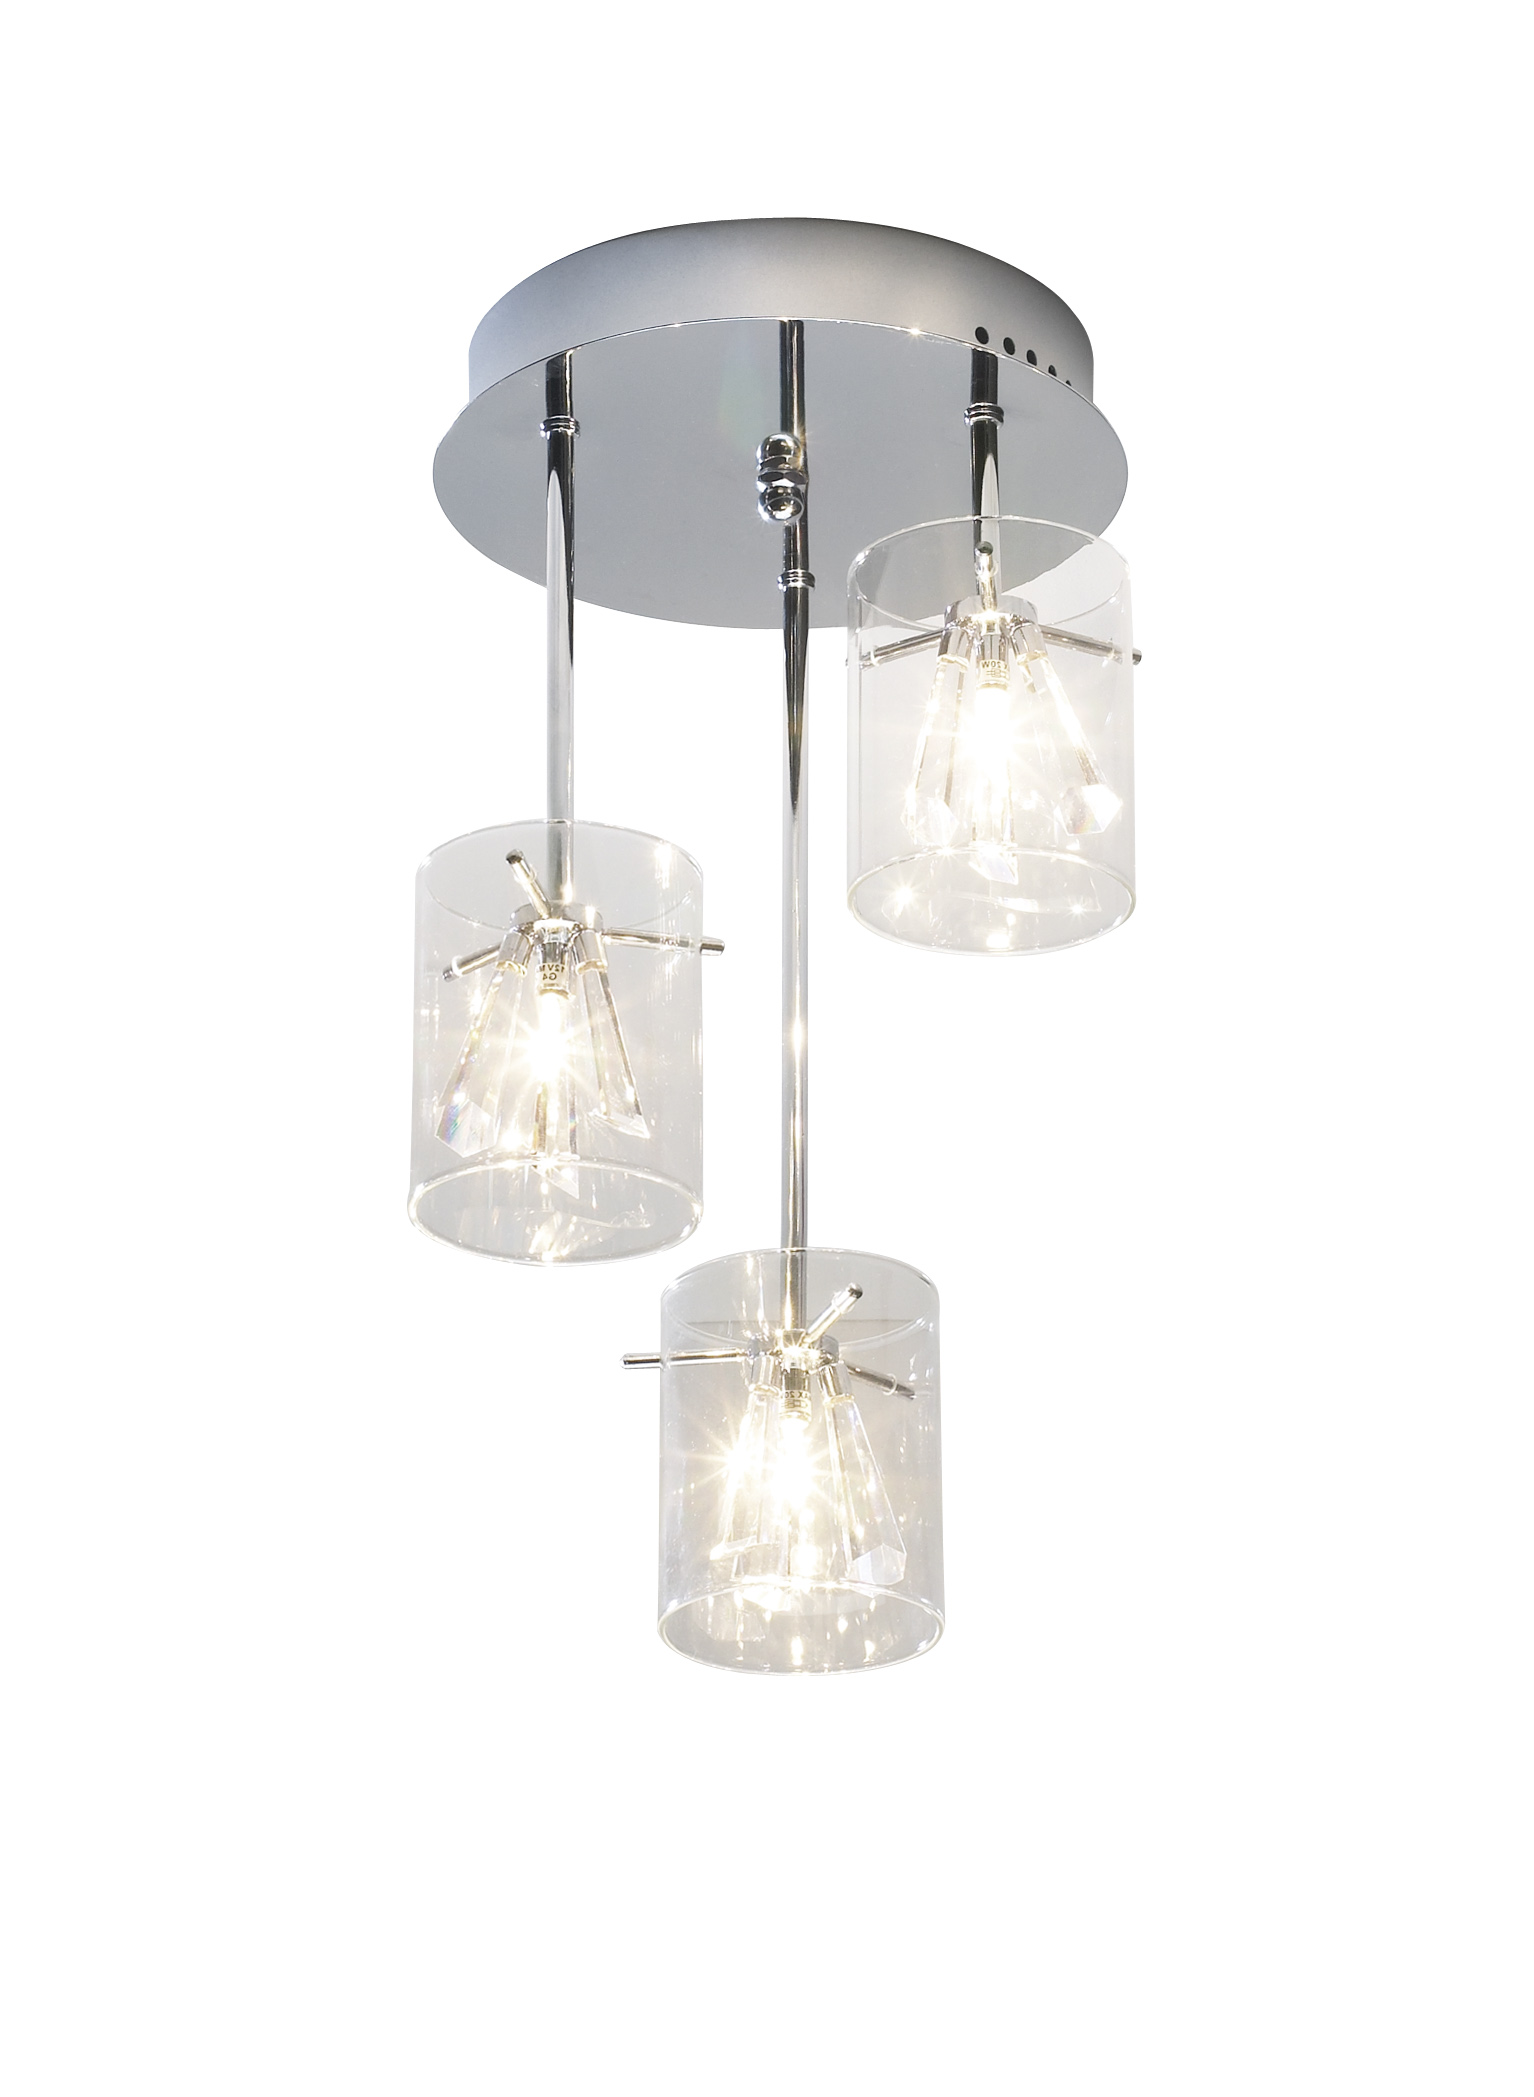 Somerset 3 Light Modern Crystal Pendant Ceiling Polished Chrome Finish Gl Cylinder Shade With Droppers